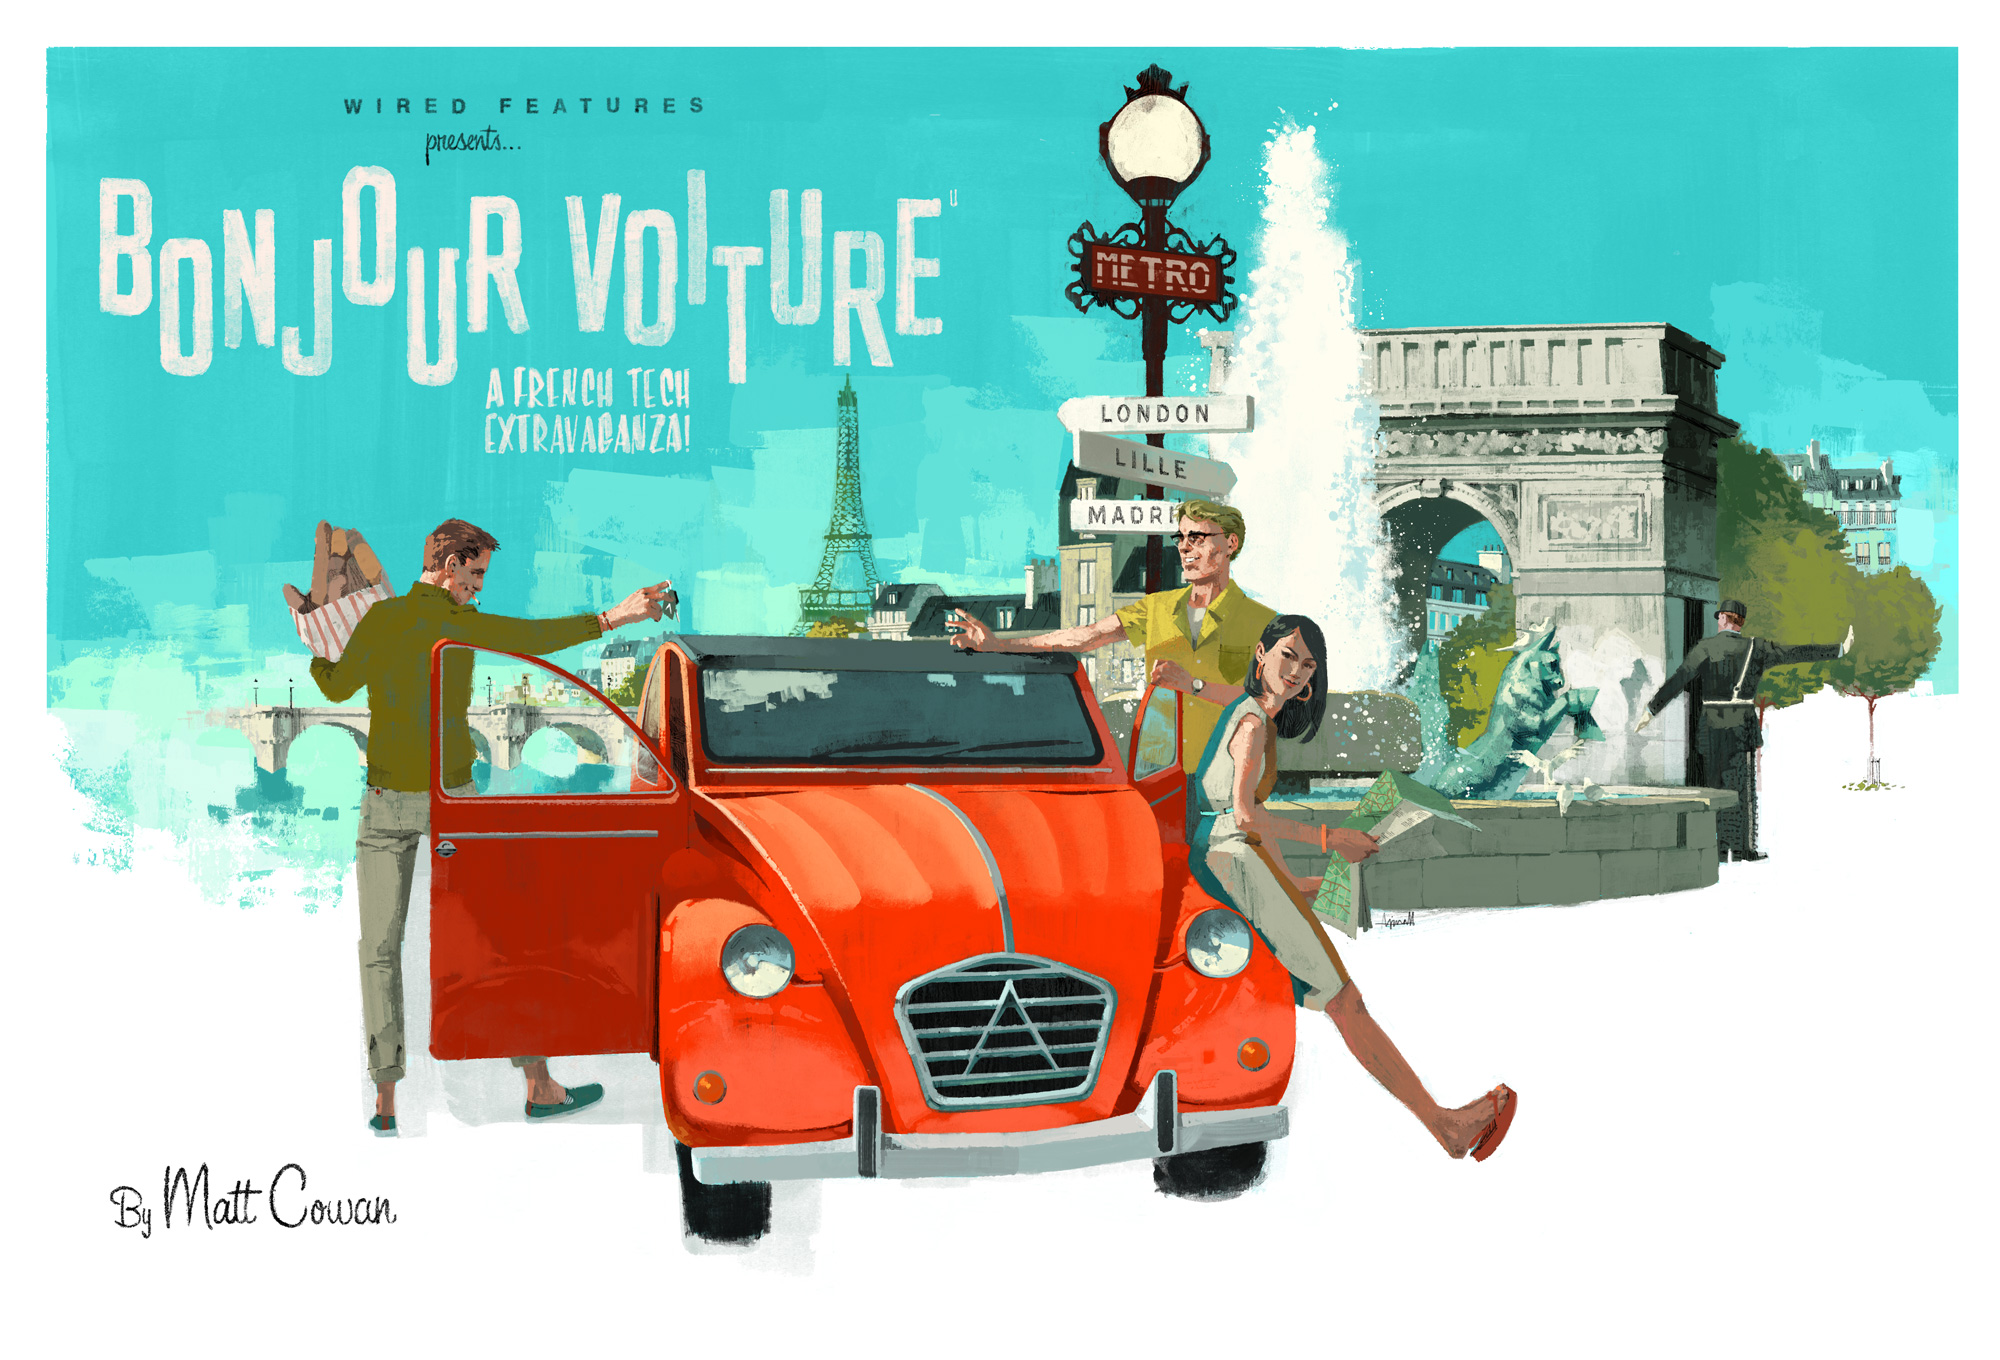 Bonjour Voiture, a French Tech Extravaganza for Wired Magazine by Marc Aspinall